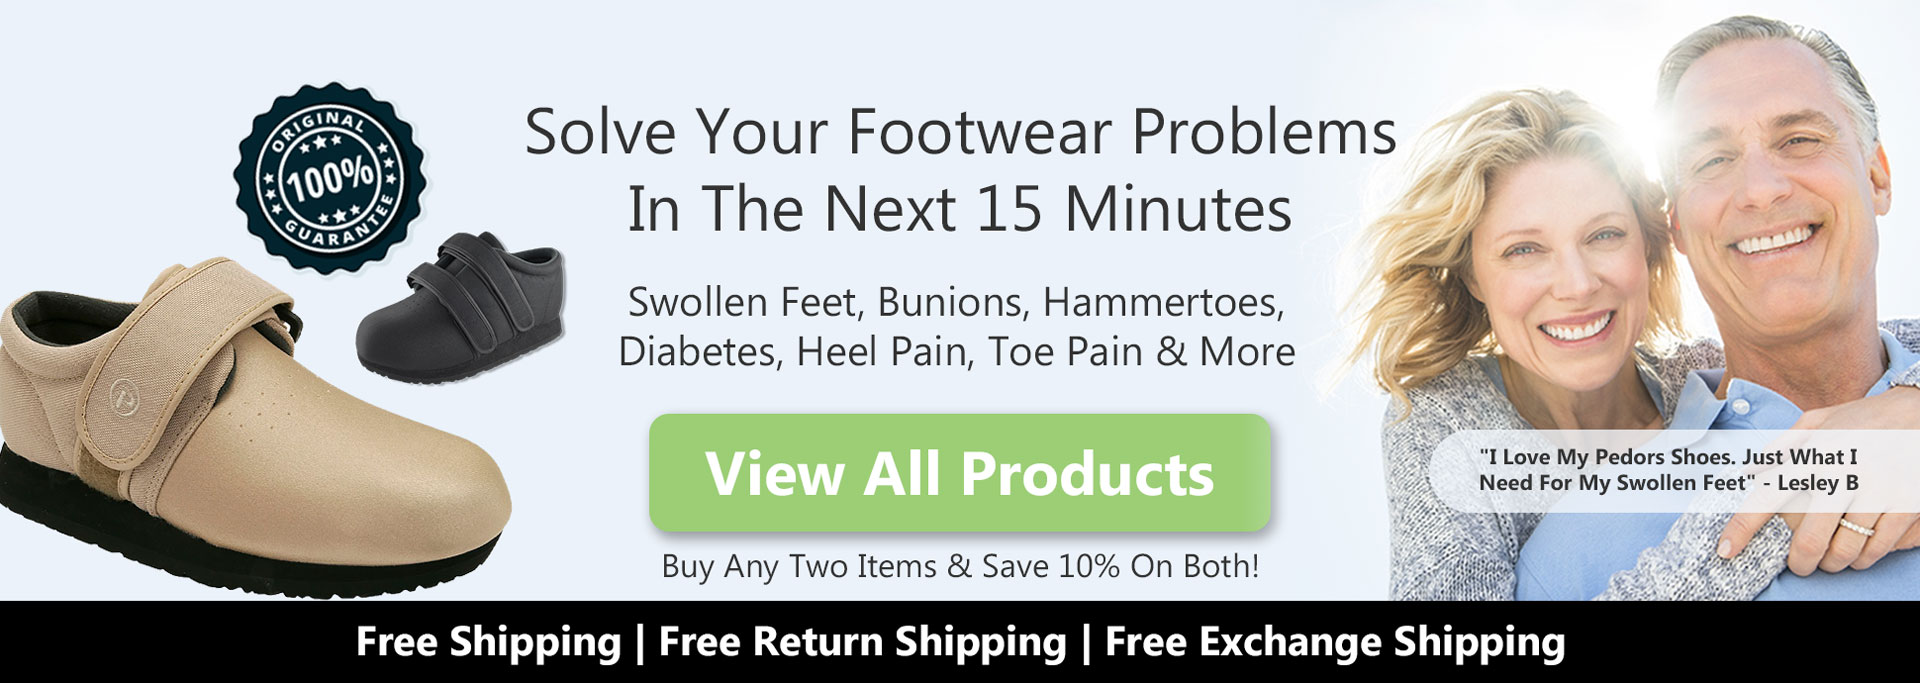 Pedors Orthopedic Stretch Shoes For Swollen Feet Lymphedema Edema Bunions Hallux Valugs Hammer Toes Plantar Fasiitis Orthopedic Shoes Heel Pain Ball of Foot Pain Metatarsalgia